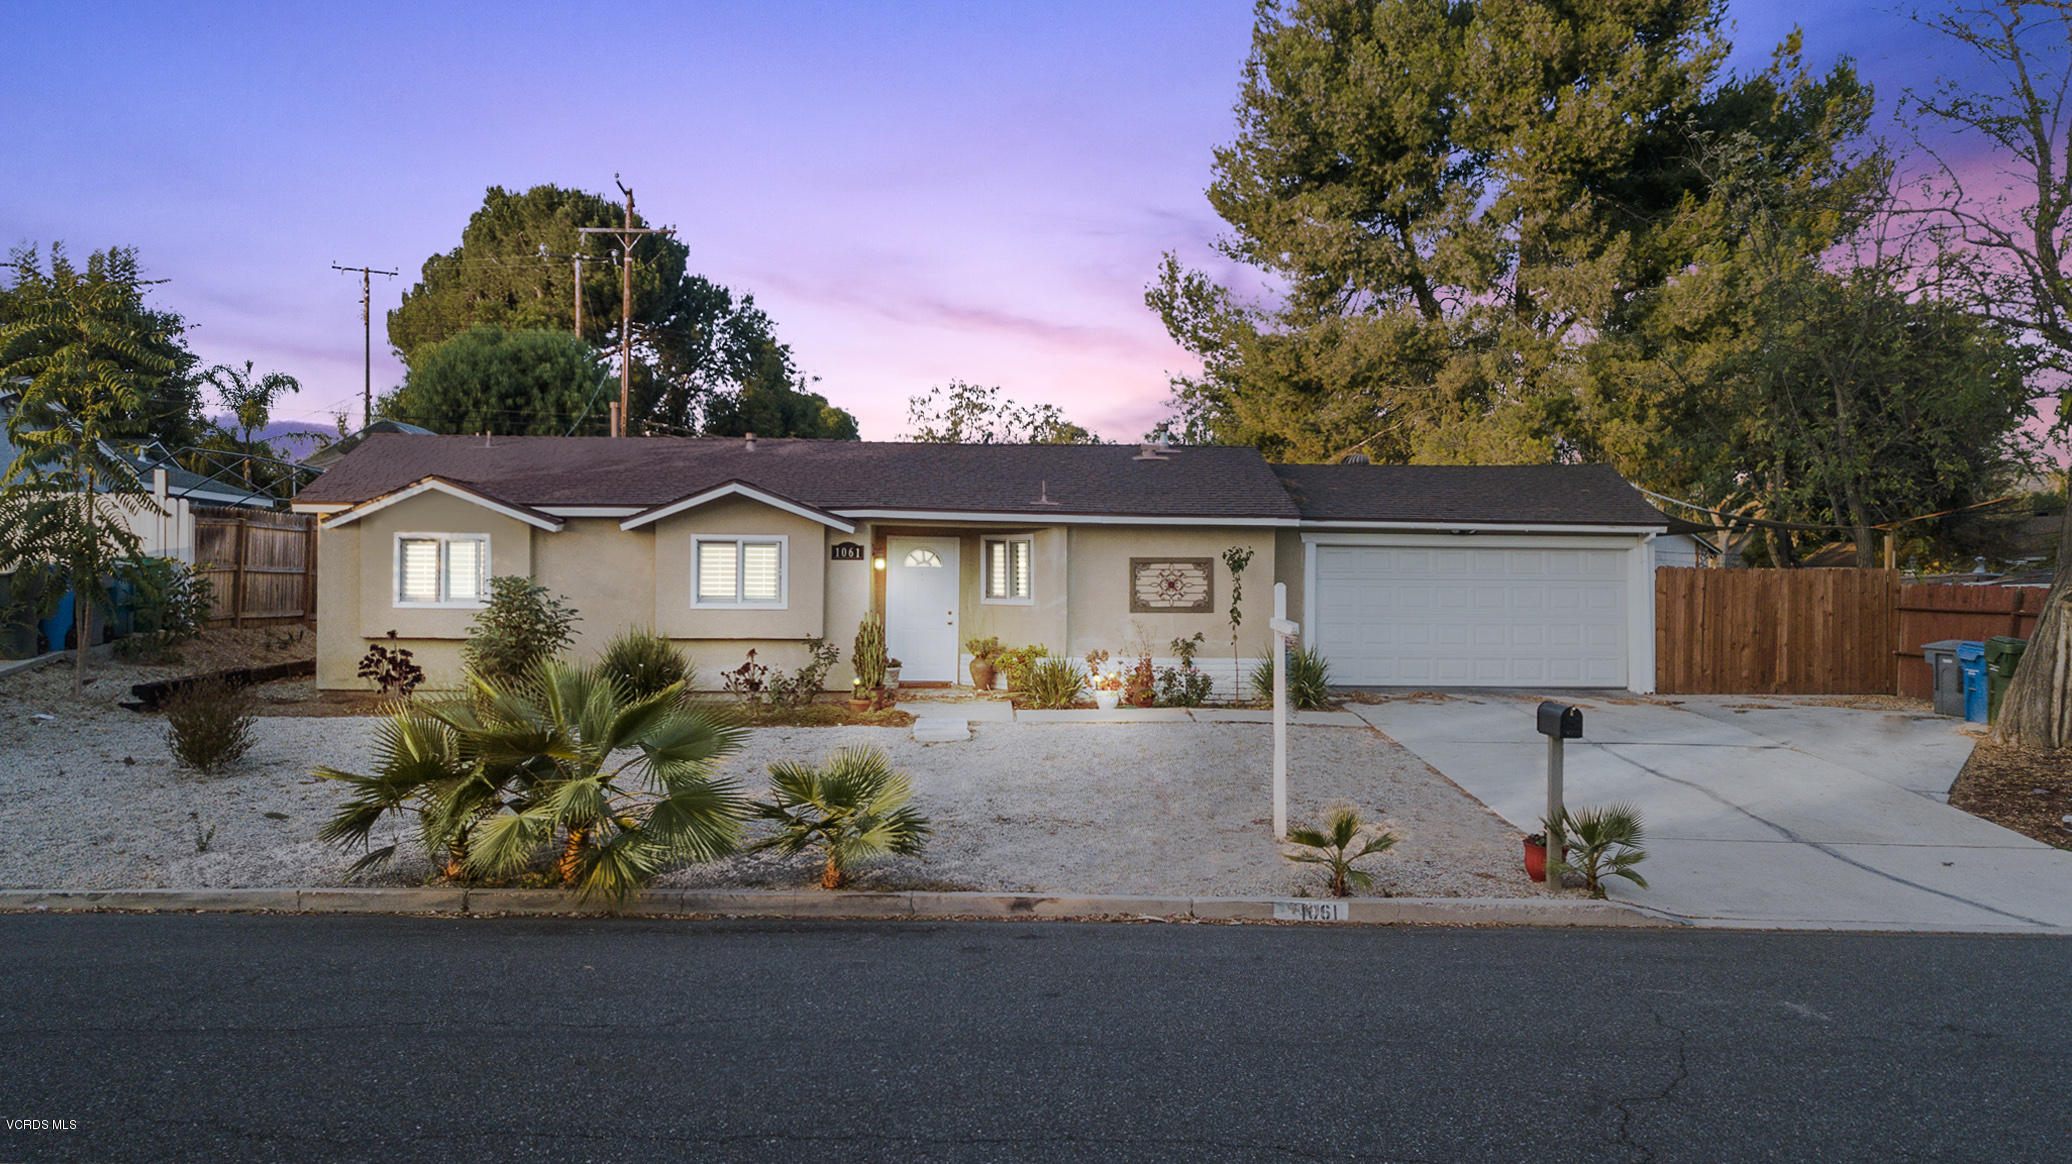 1061 Calle Tulipan, Thousand Oaks, CA 91360